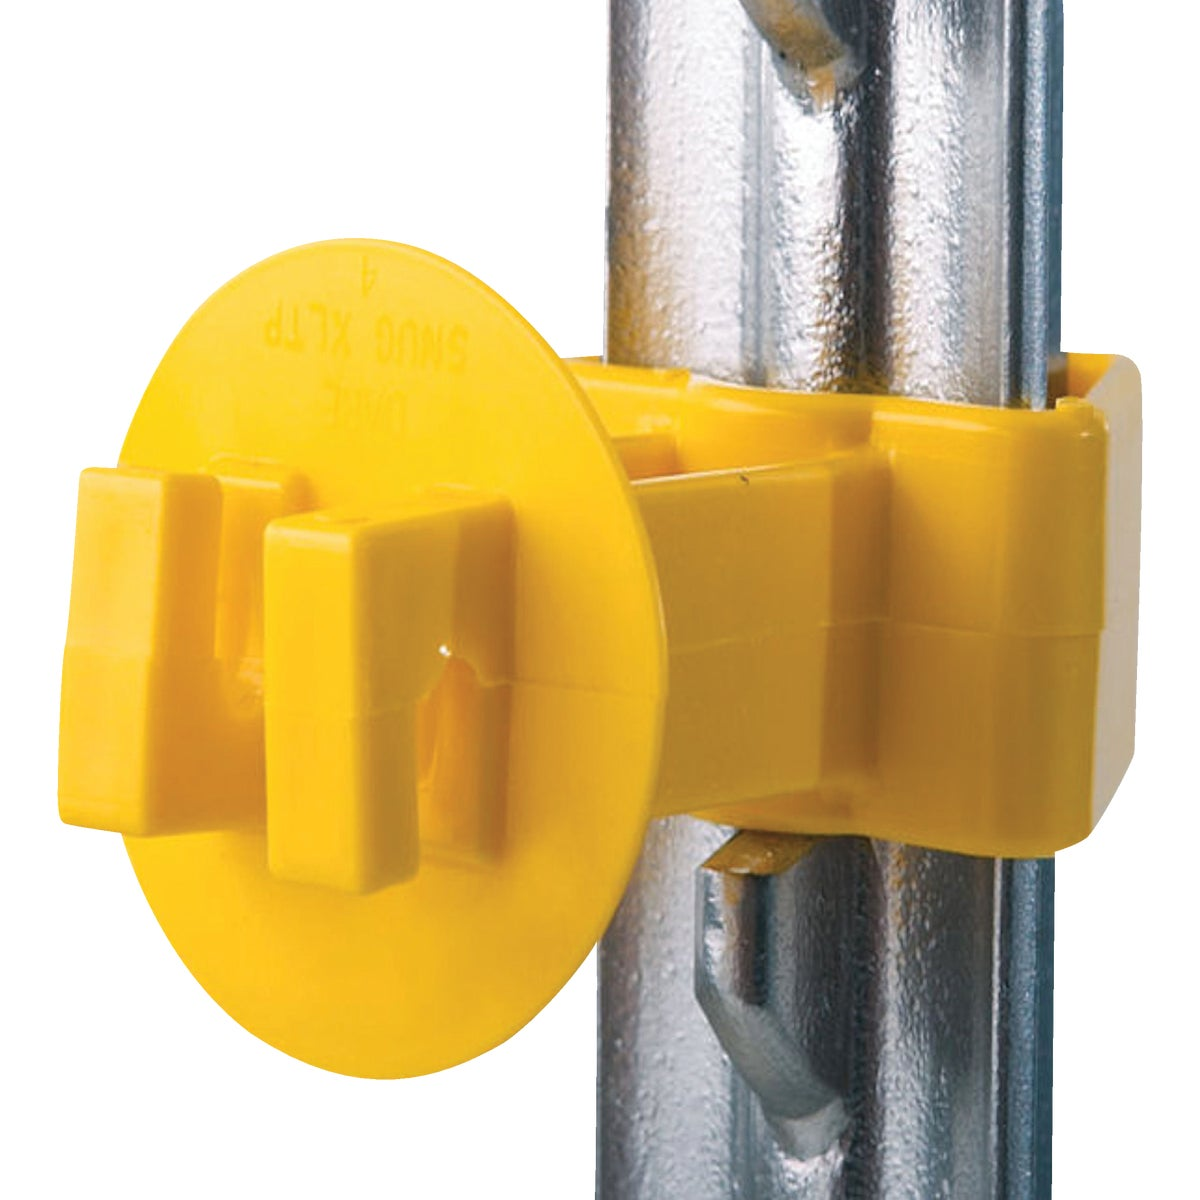 25PC XL TPOST INSULATOR - SNUG-XLSTP-25 by Dare Products Inc